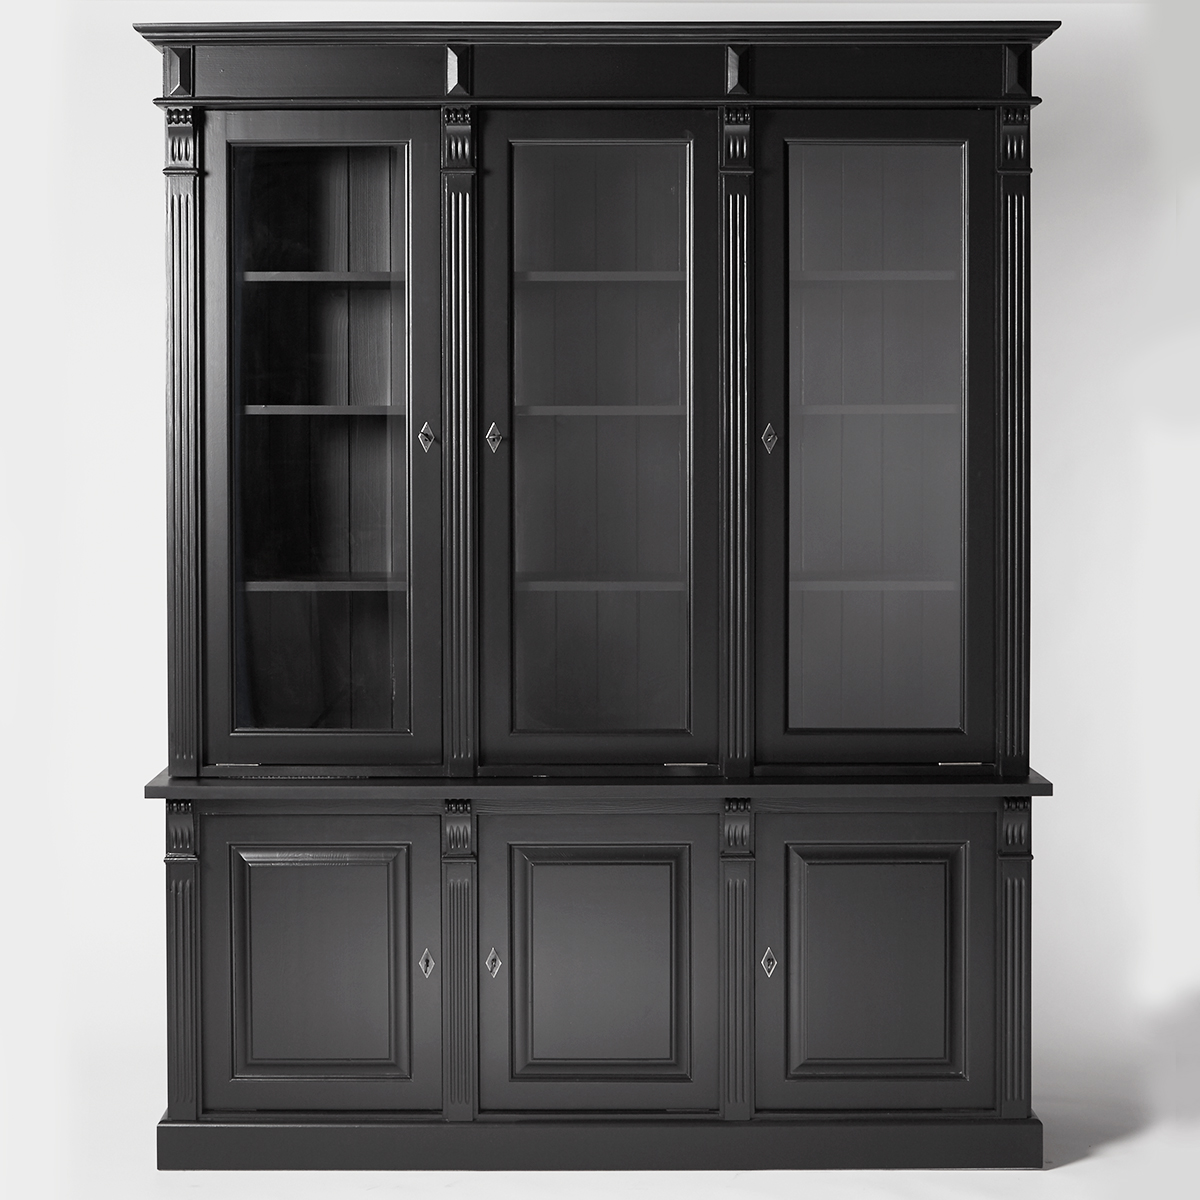 bahut vaisselier comparer les prix des bahut vaisselier. Black Bedroom Furniture Sets. Home Design Ideas